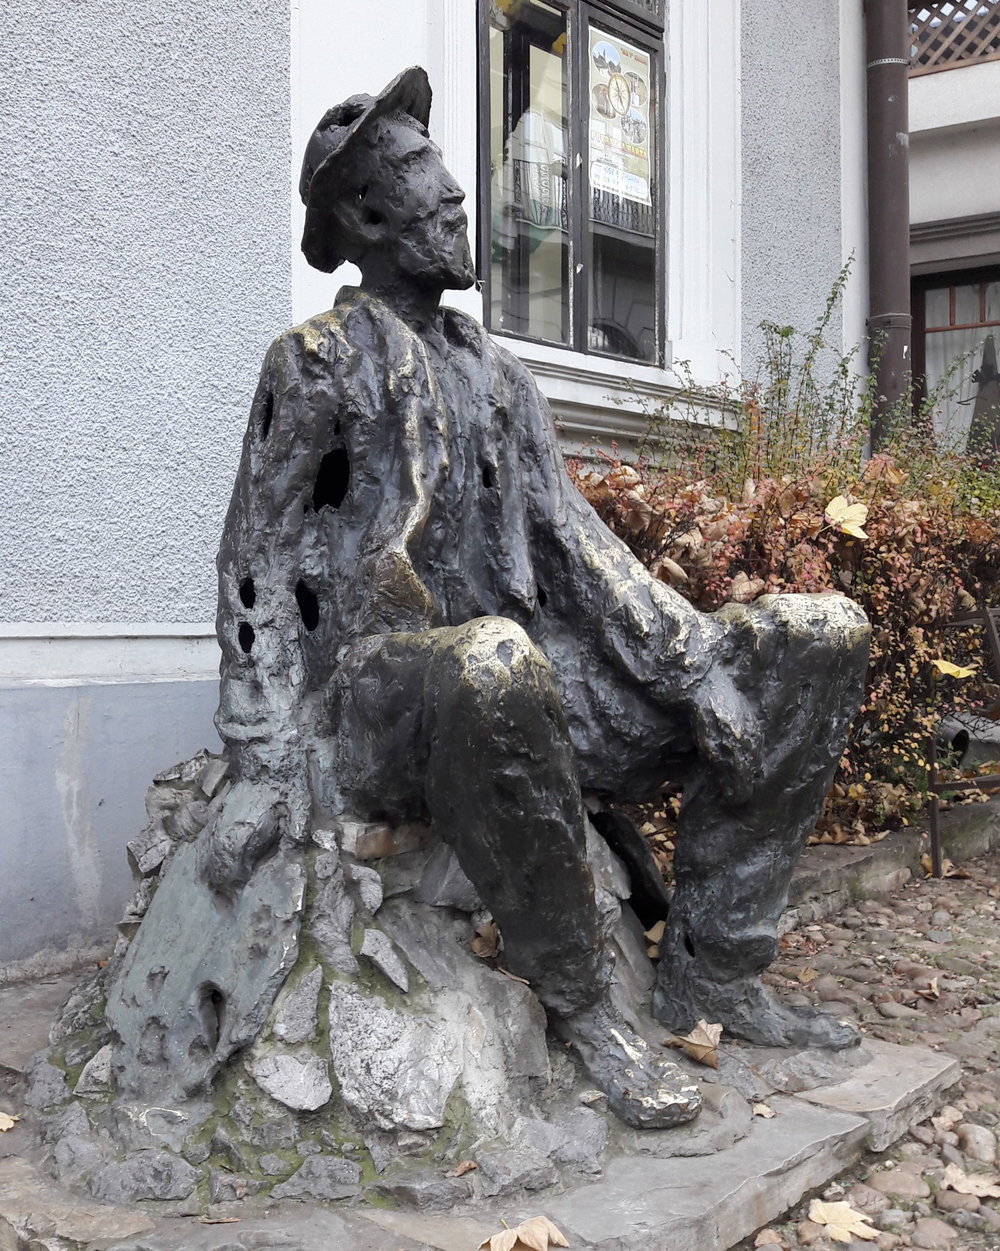 Sculpture of the Serbian poet, Djura Jakšić, by sculptor Jovan Soldatović, Skadarlija